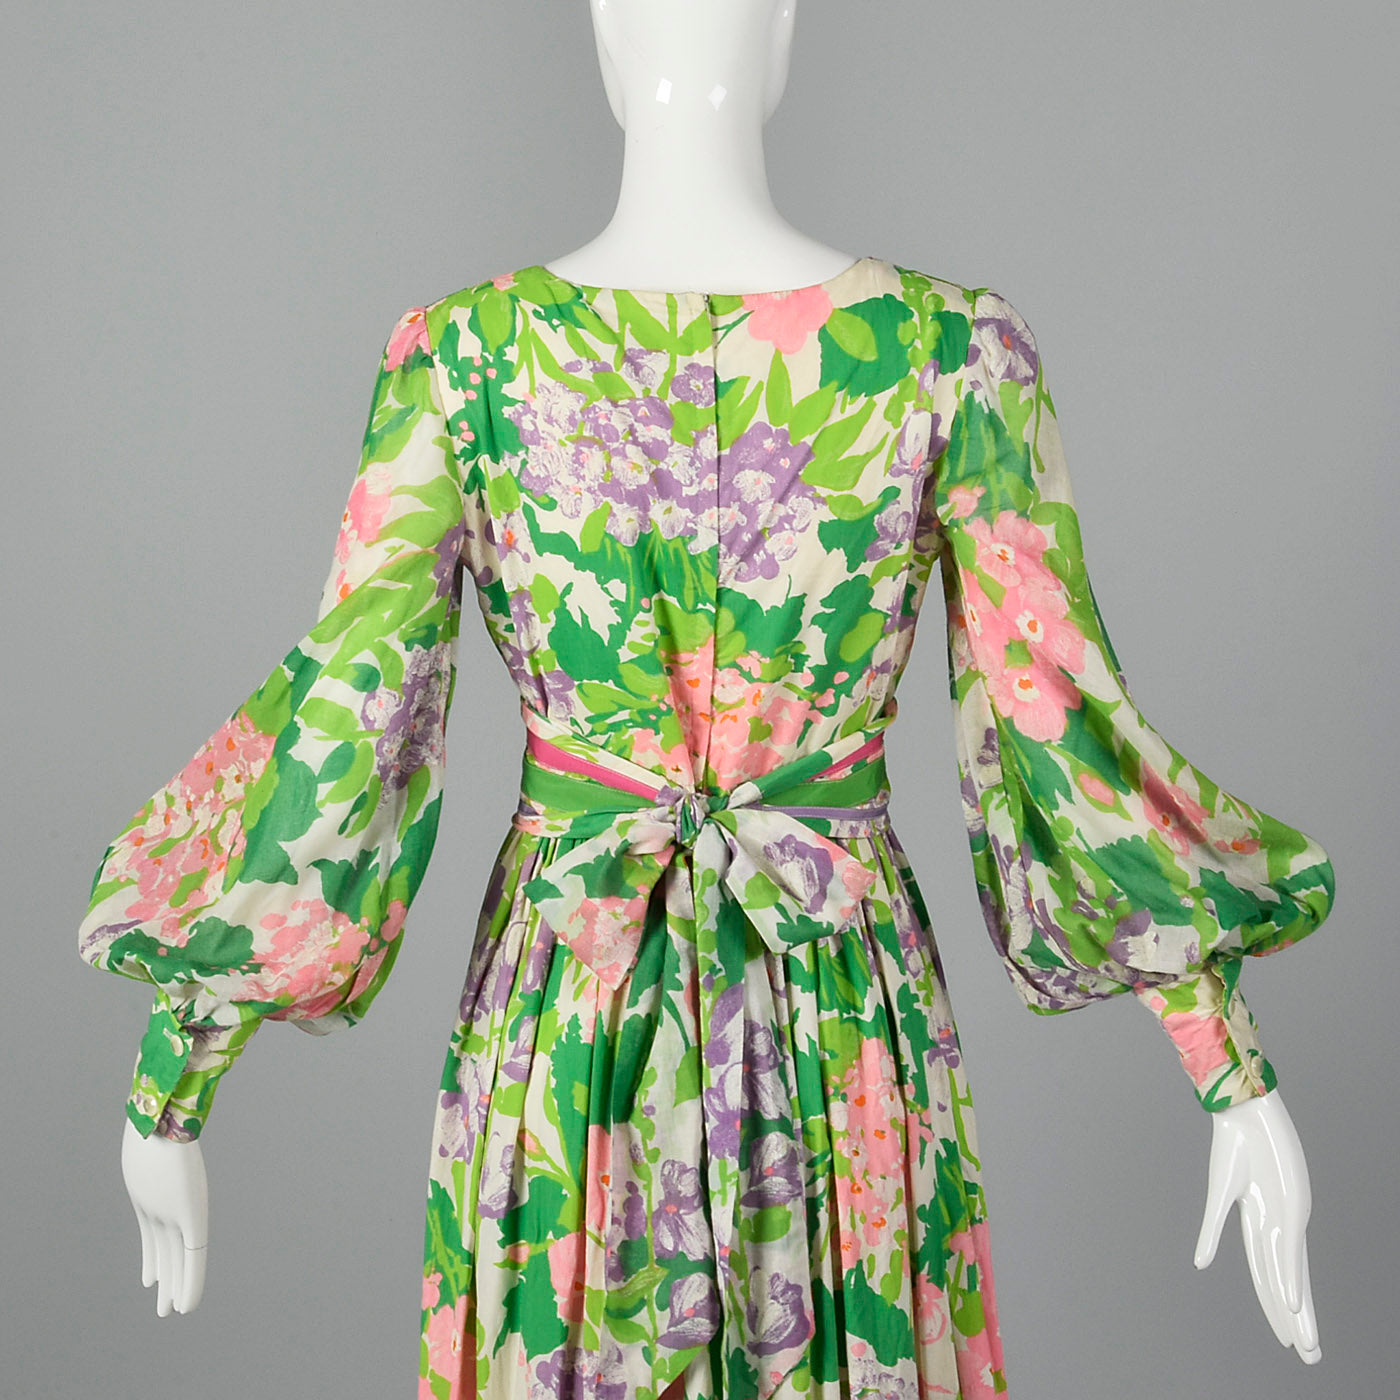 1970s Floral Maxi Dress with Bishop Sleeves